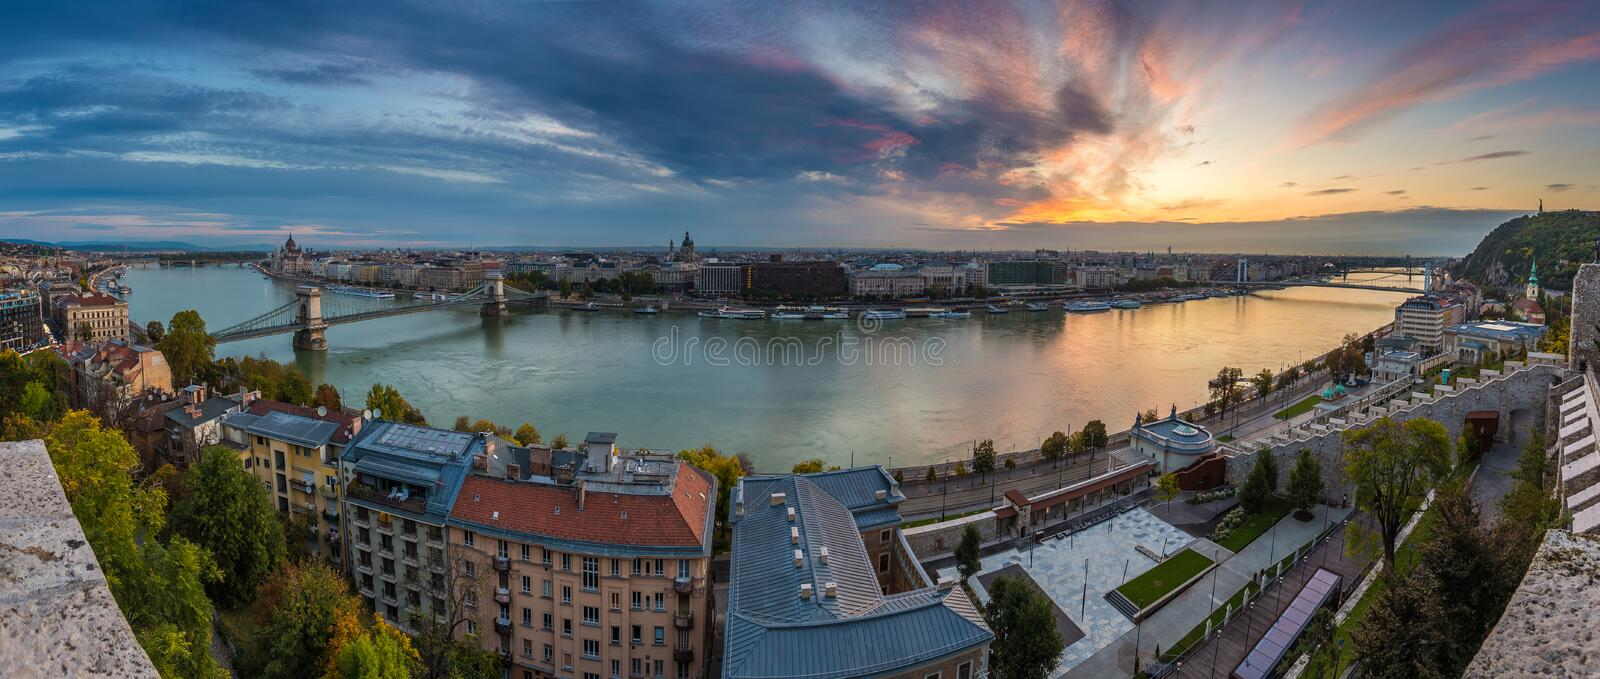 Budapest, Hungary - Amazing colorful sunrise over the city of Budapest with Szechenyi Chain Bridge. Liberty Bridge and other landmarks taken from Buda Castle stock image